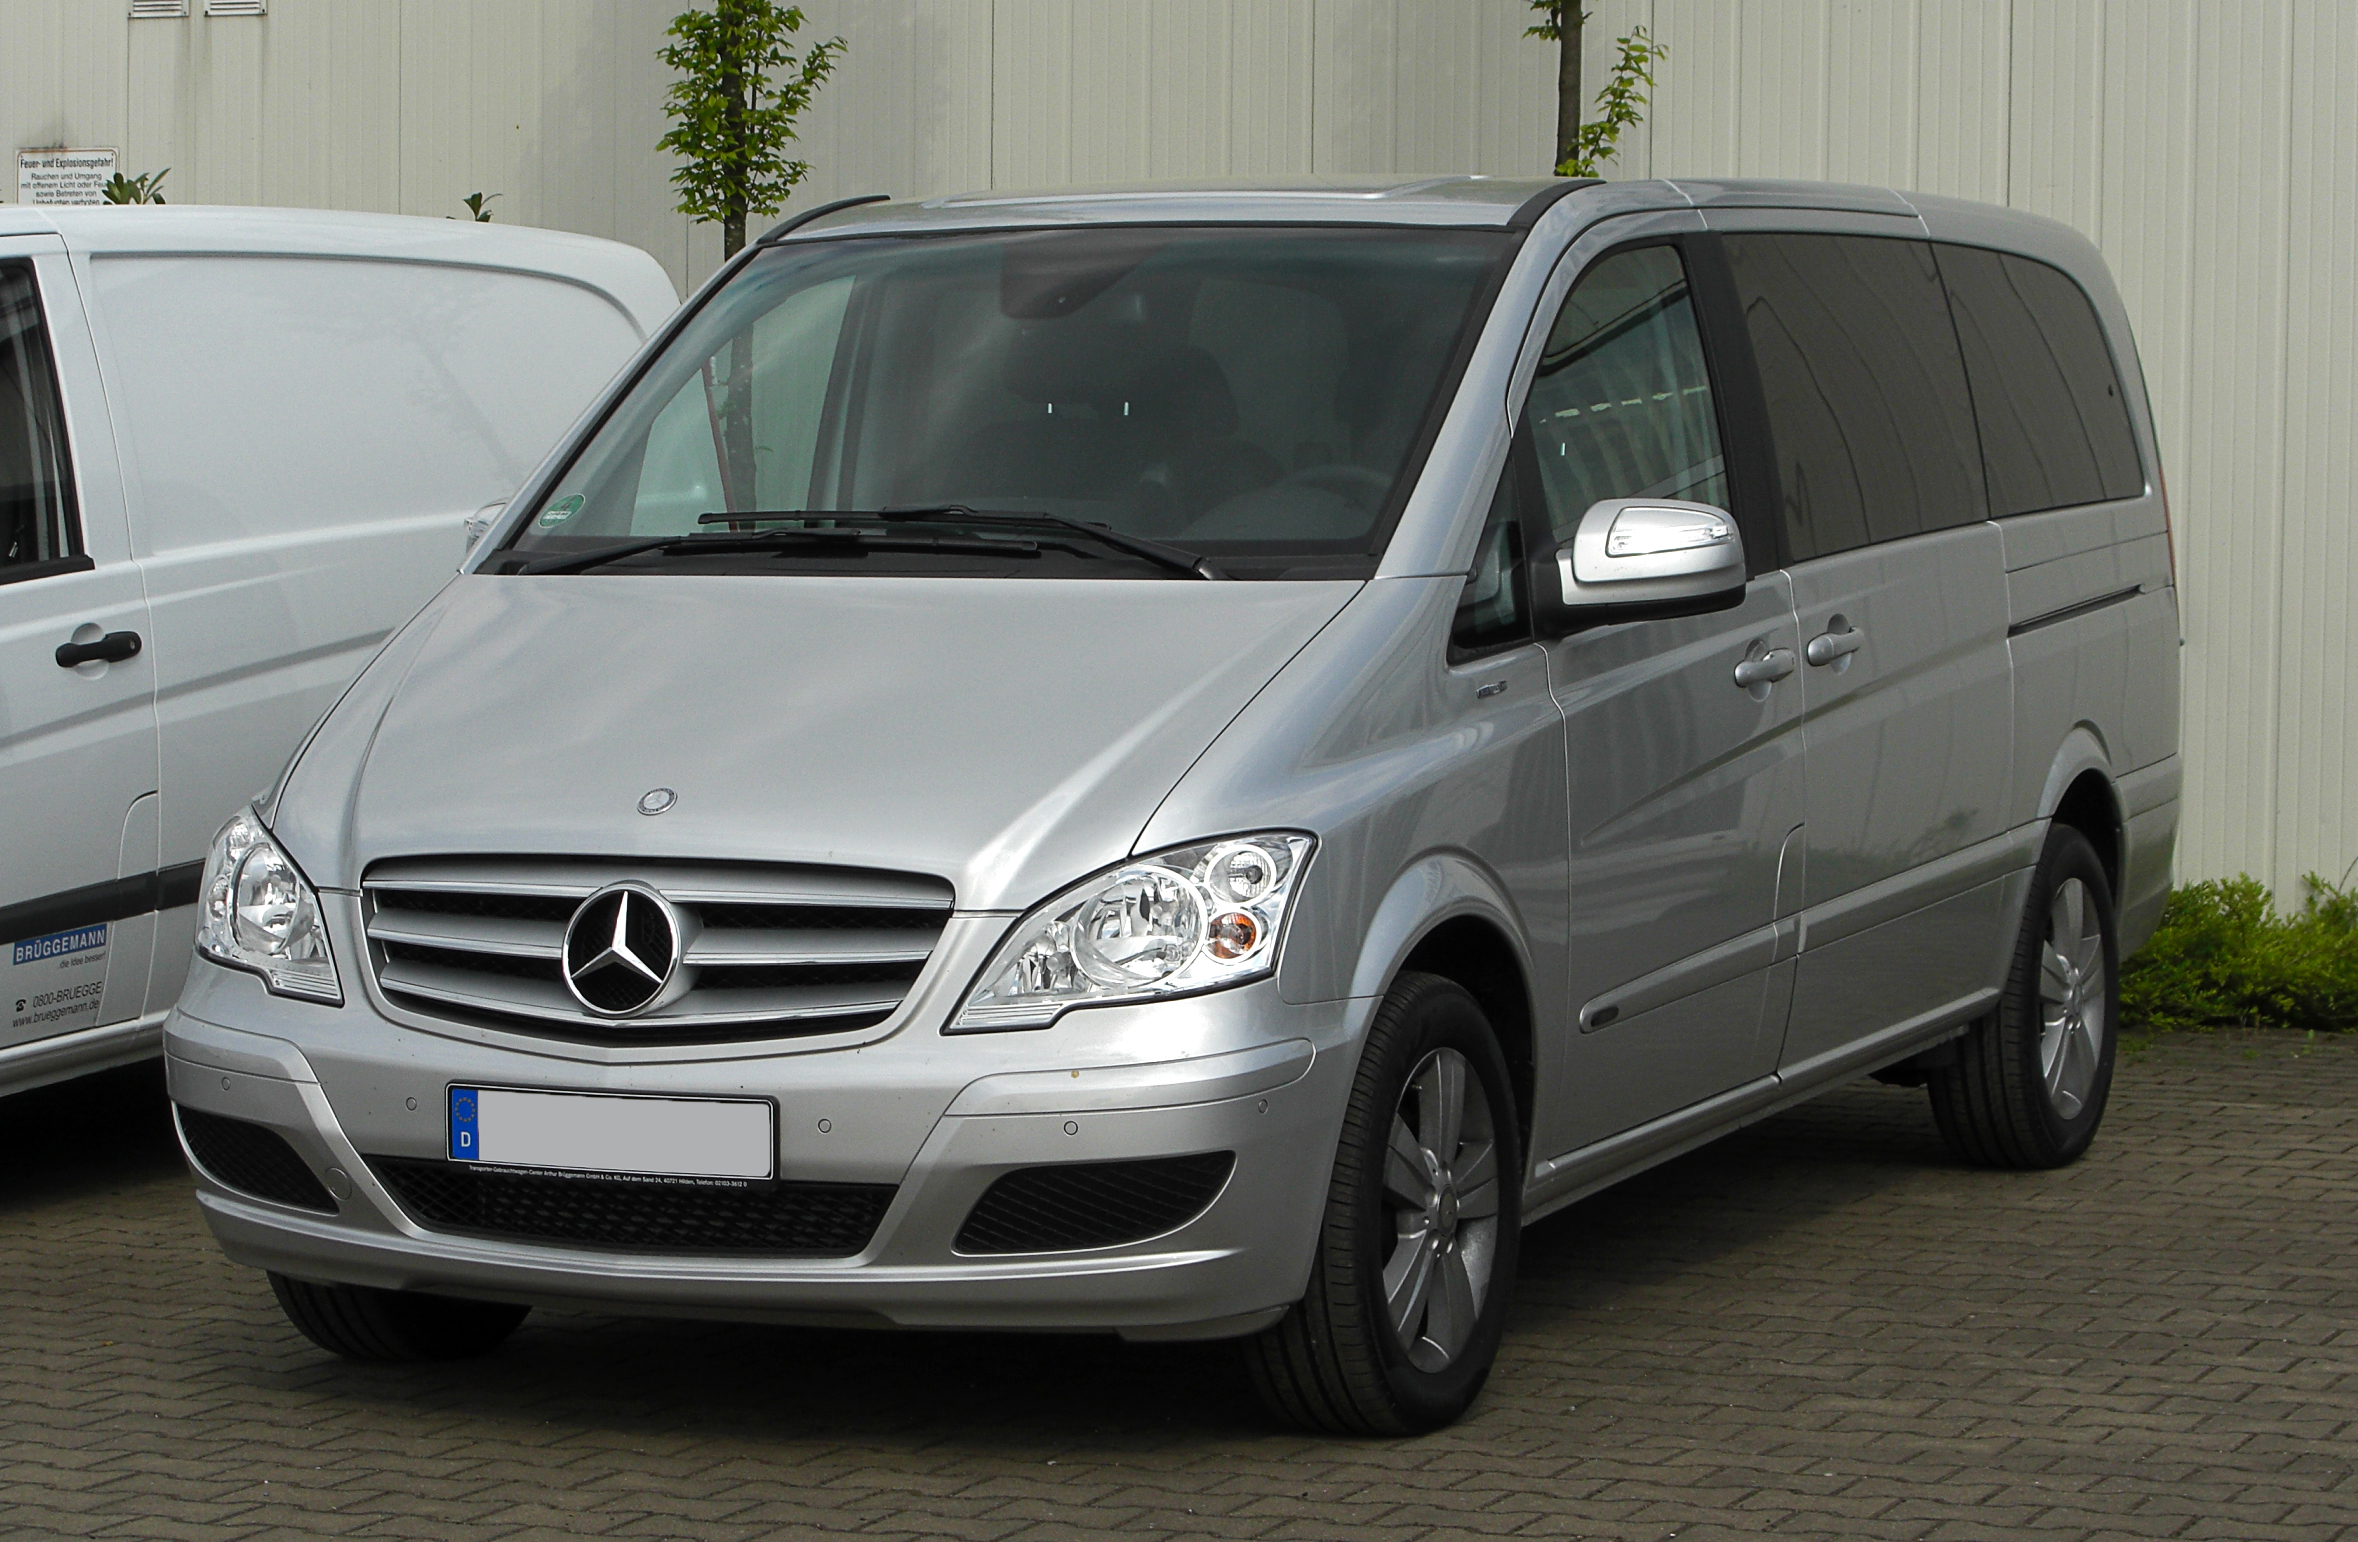 Mercedes-Benz  Viano (W639 facelift 2010)  CDI 2.2 (163 Hp)